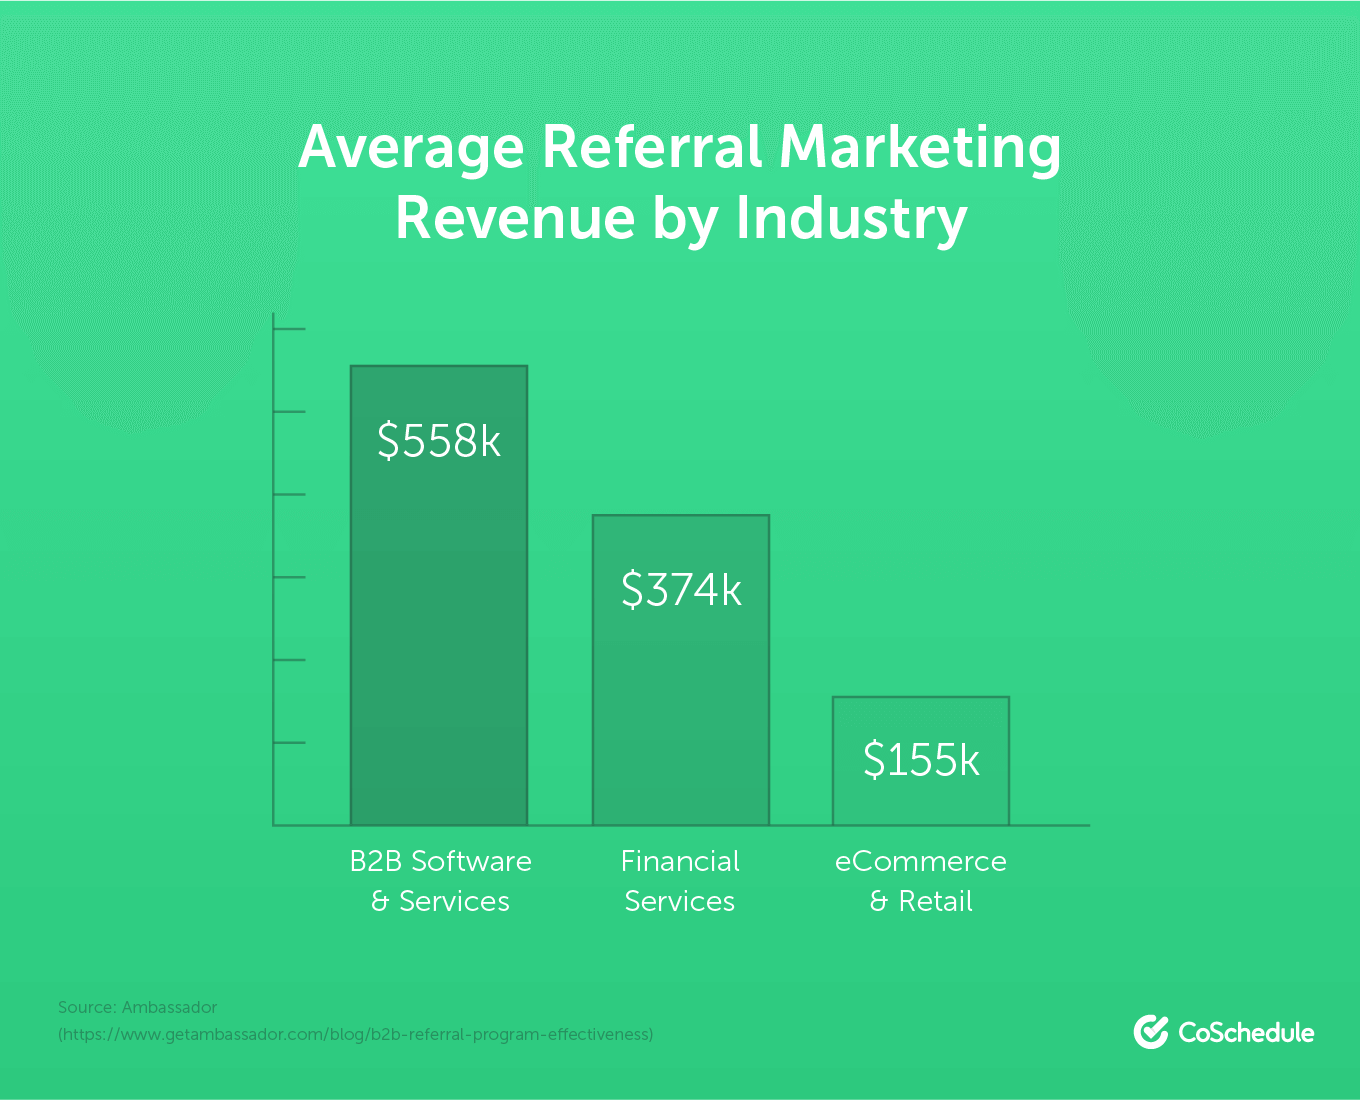 Statistic on referral marketing